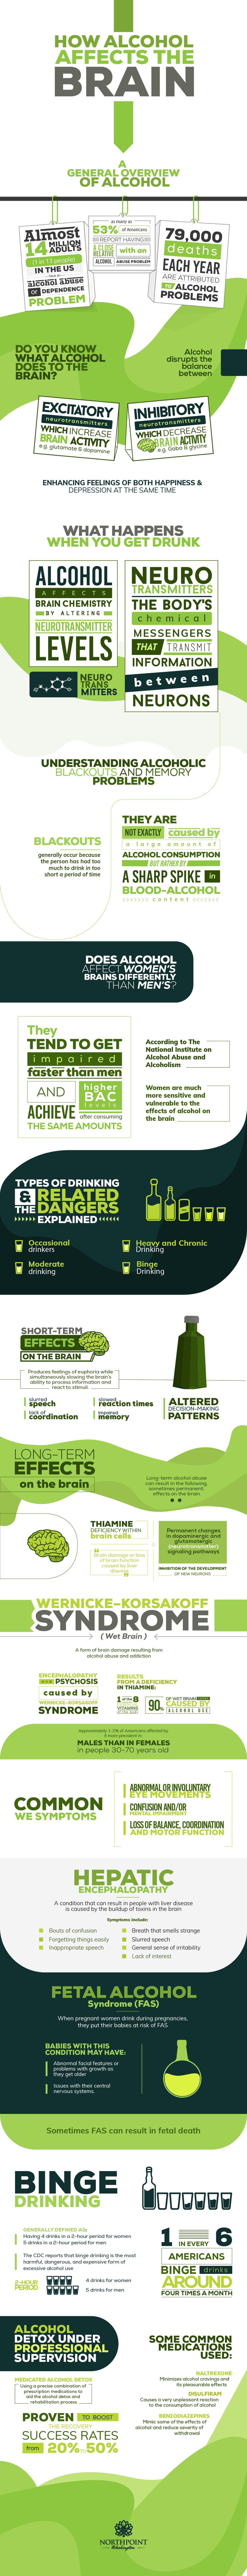 Alcohol Affects in the Brain Infographic